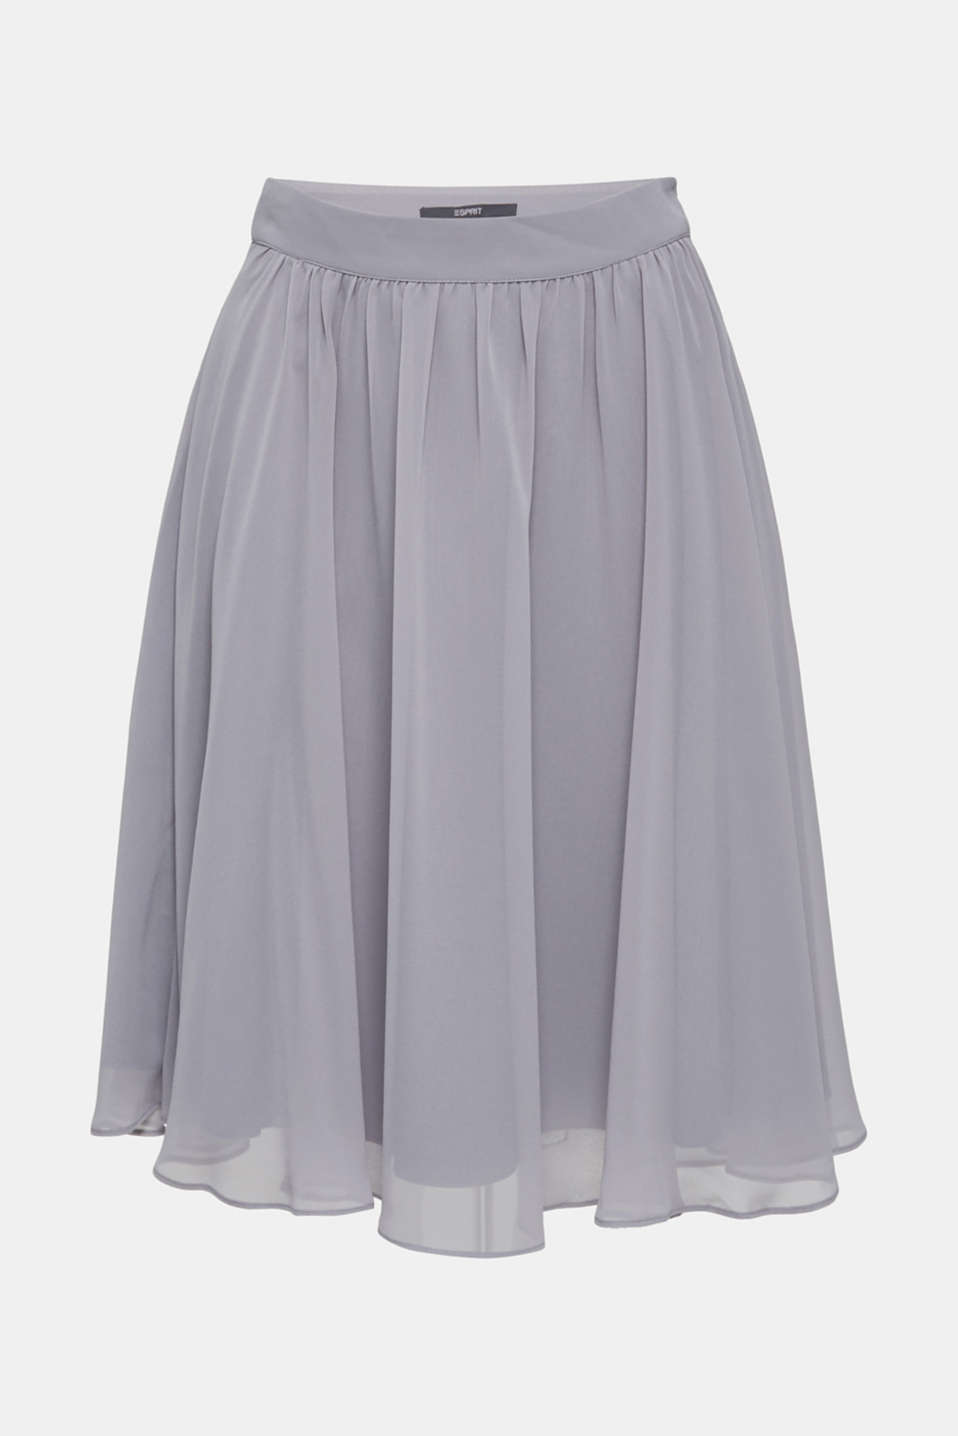 Swirling chiffon skirt, GREY, detail image number 5